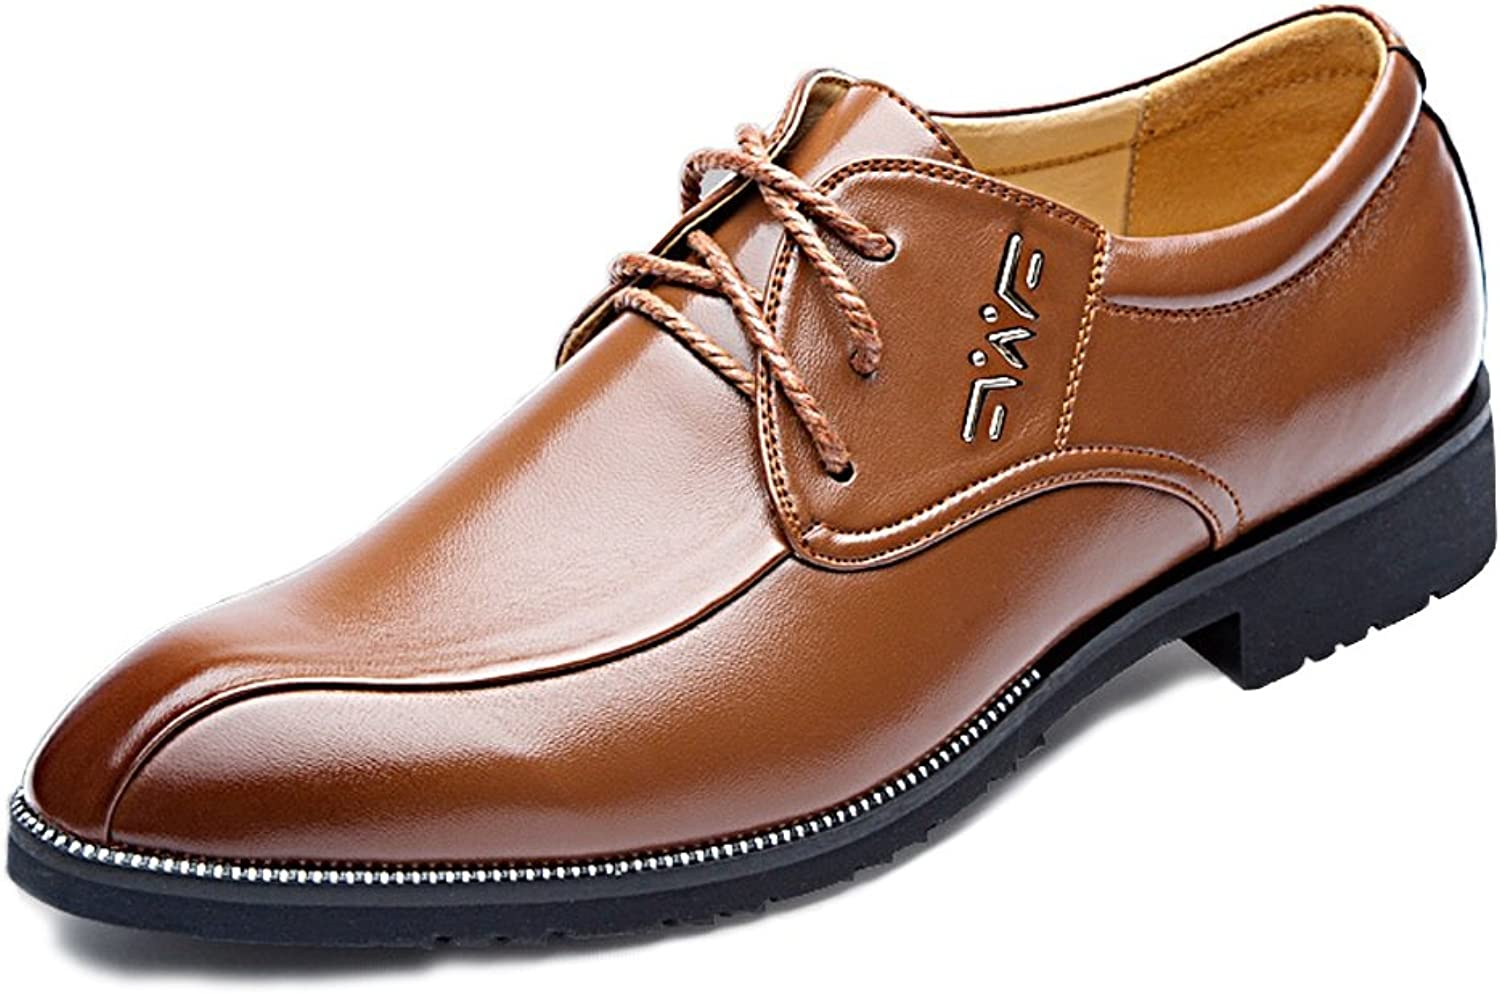 Men's Fashion Oxford shoes Men's PU Leather Fashion Casual Official Business Oxford shoes Heel Soft Sole Flats Casual Oxford shoes (color   Brown, Size   7.5 UK)